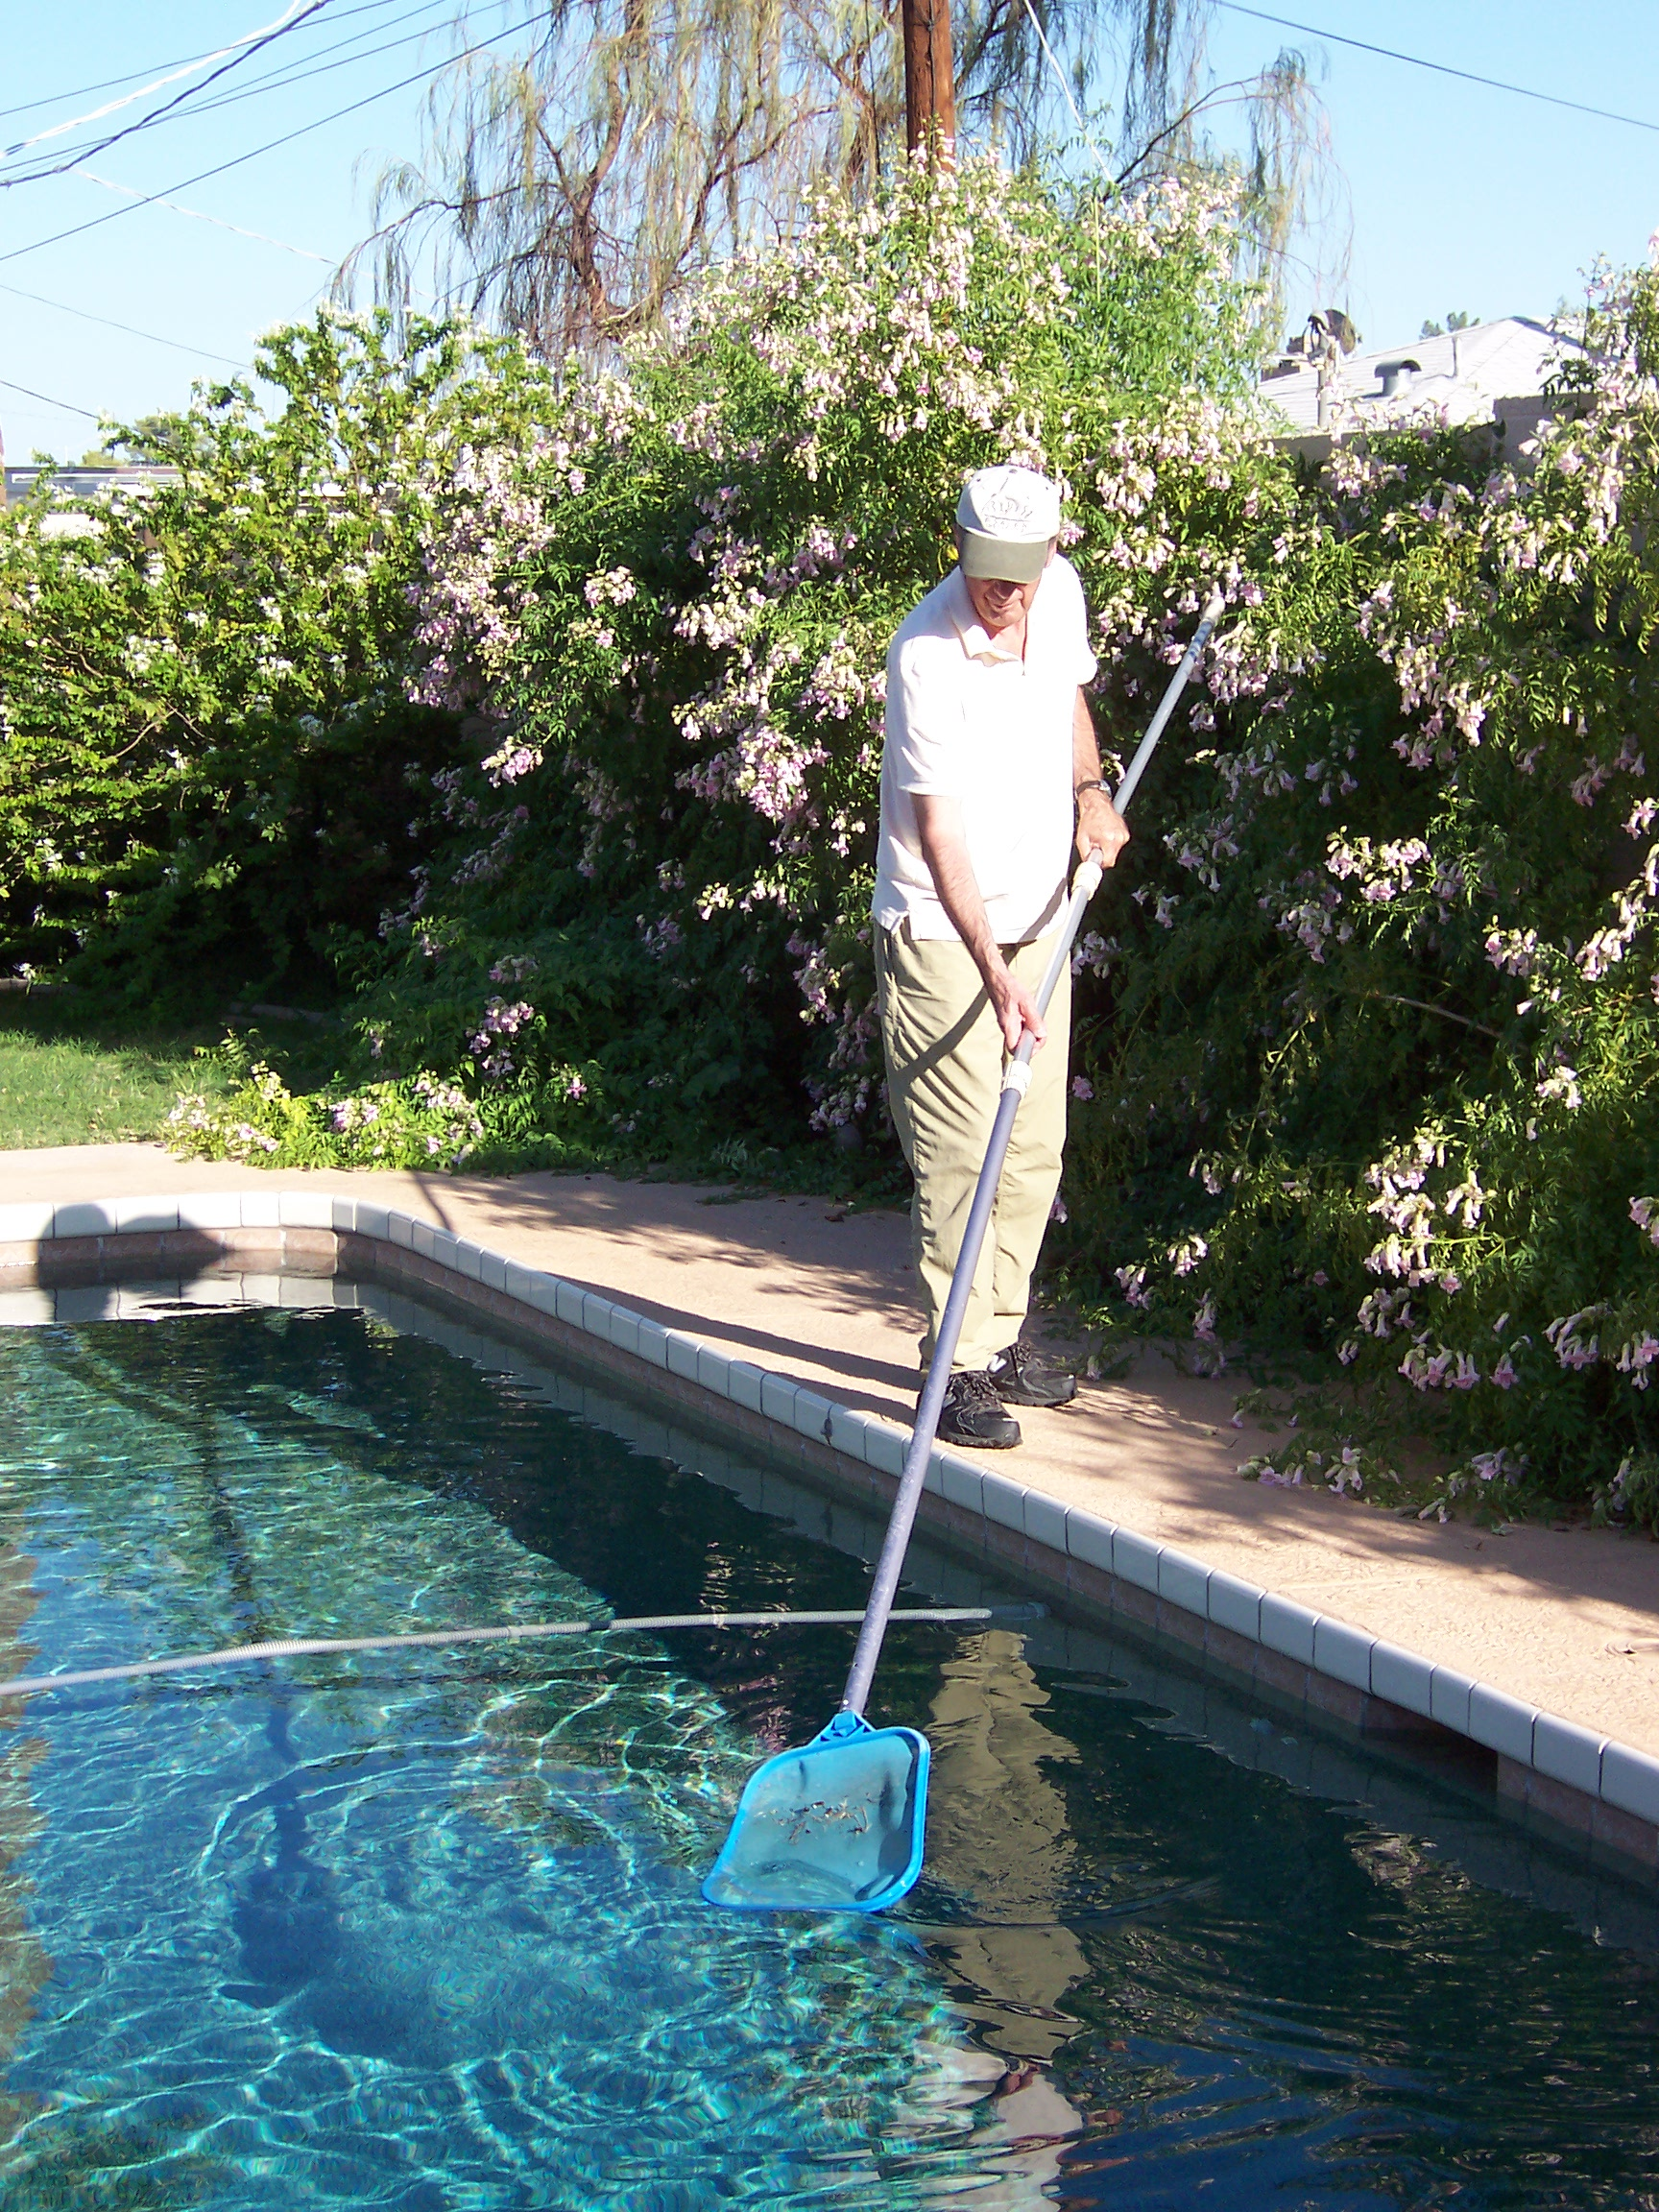 Dennis Cleaning Pool